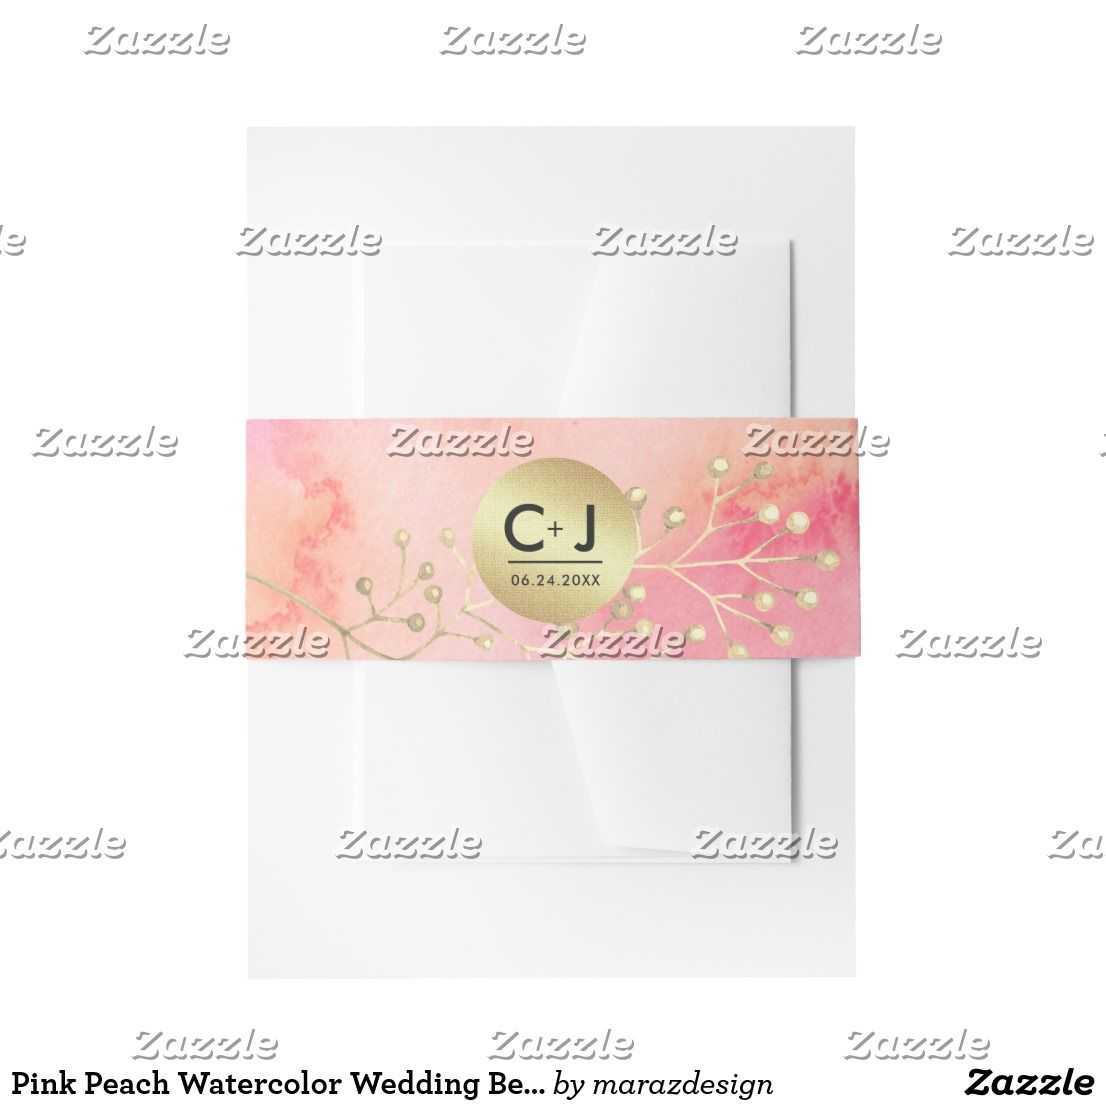 Pink Peach Watercolor Wedding Belly Bands Invitation Belly Band